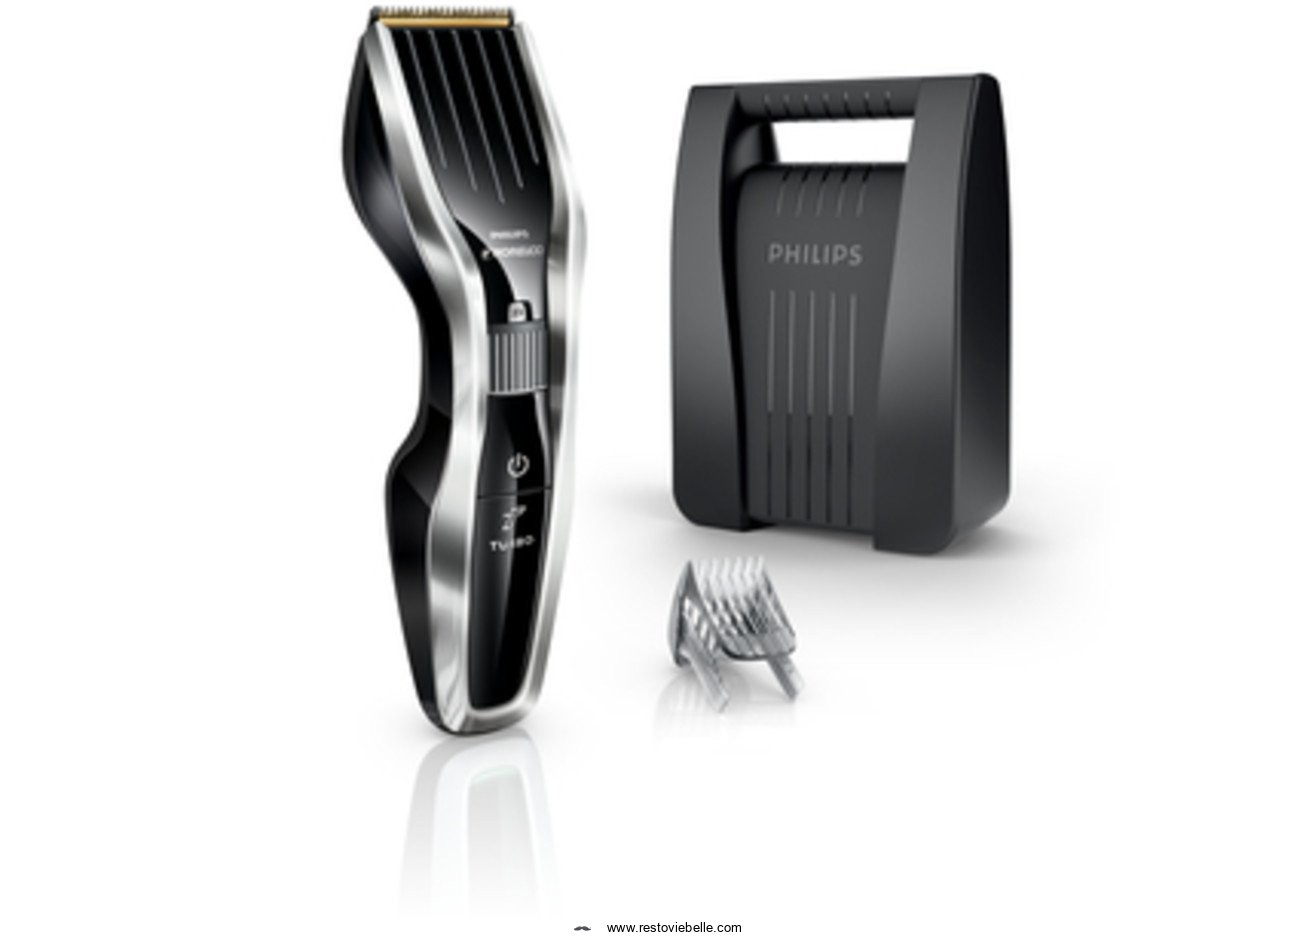 Philips Norelco Hair Clipper Hc7452/41